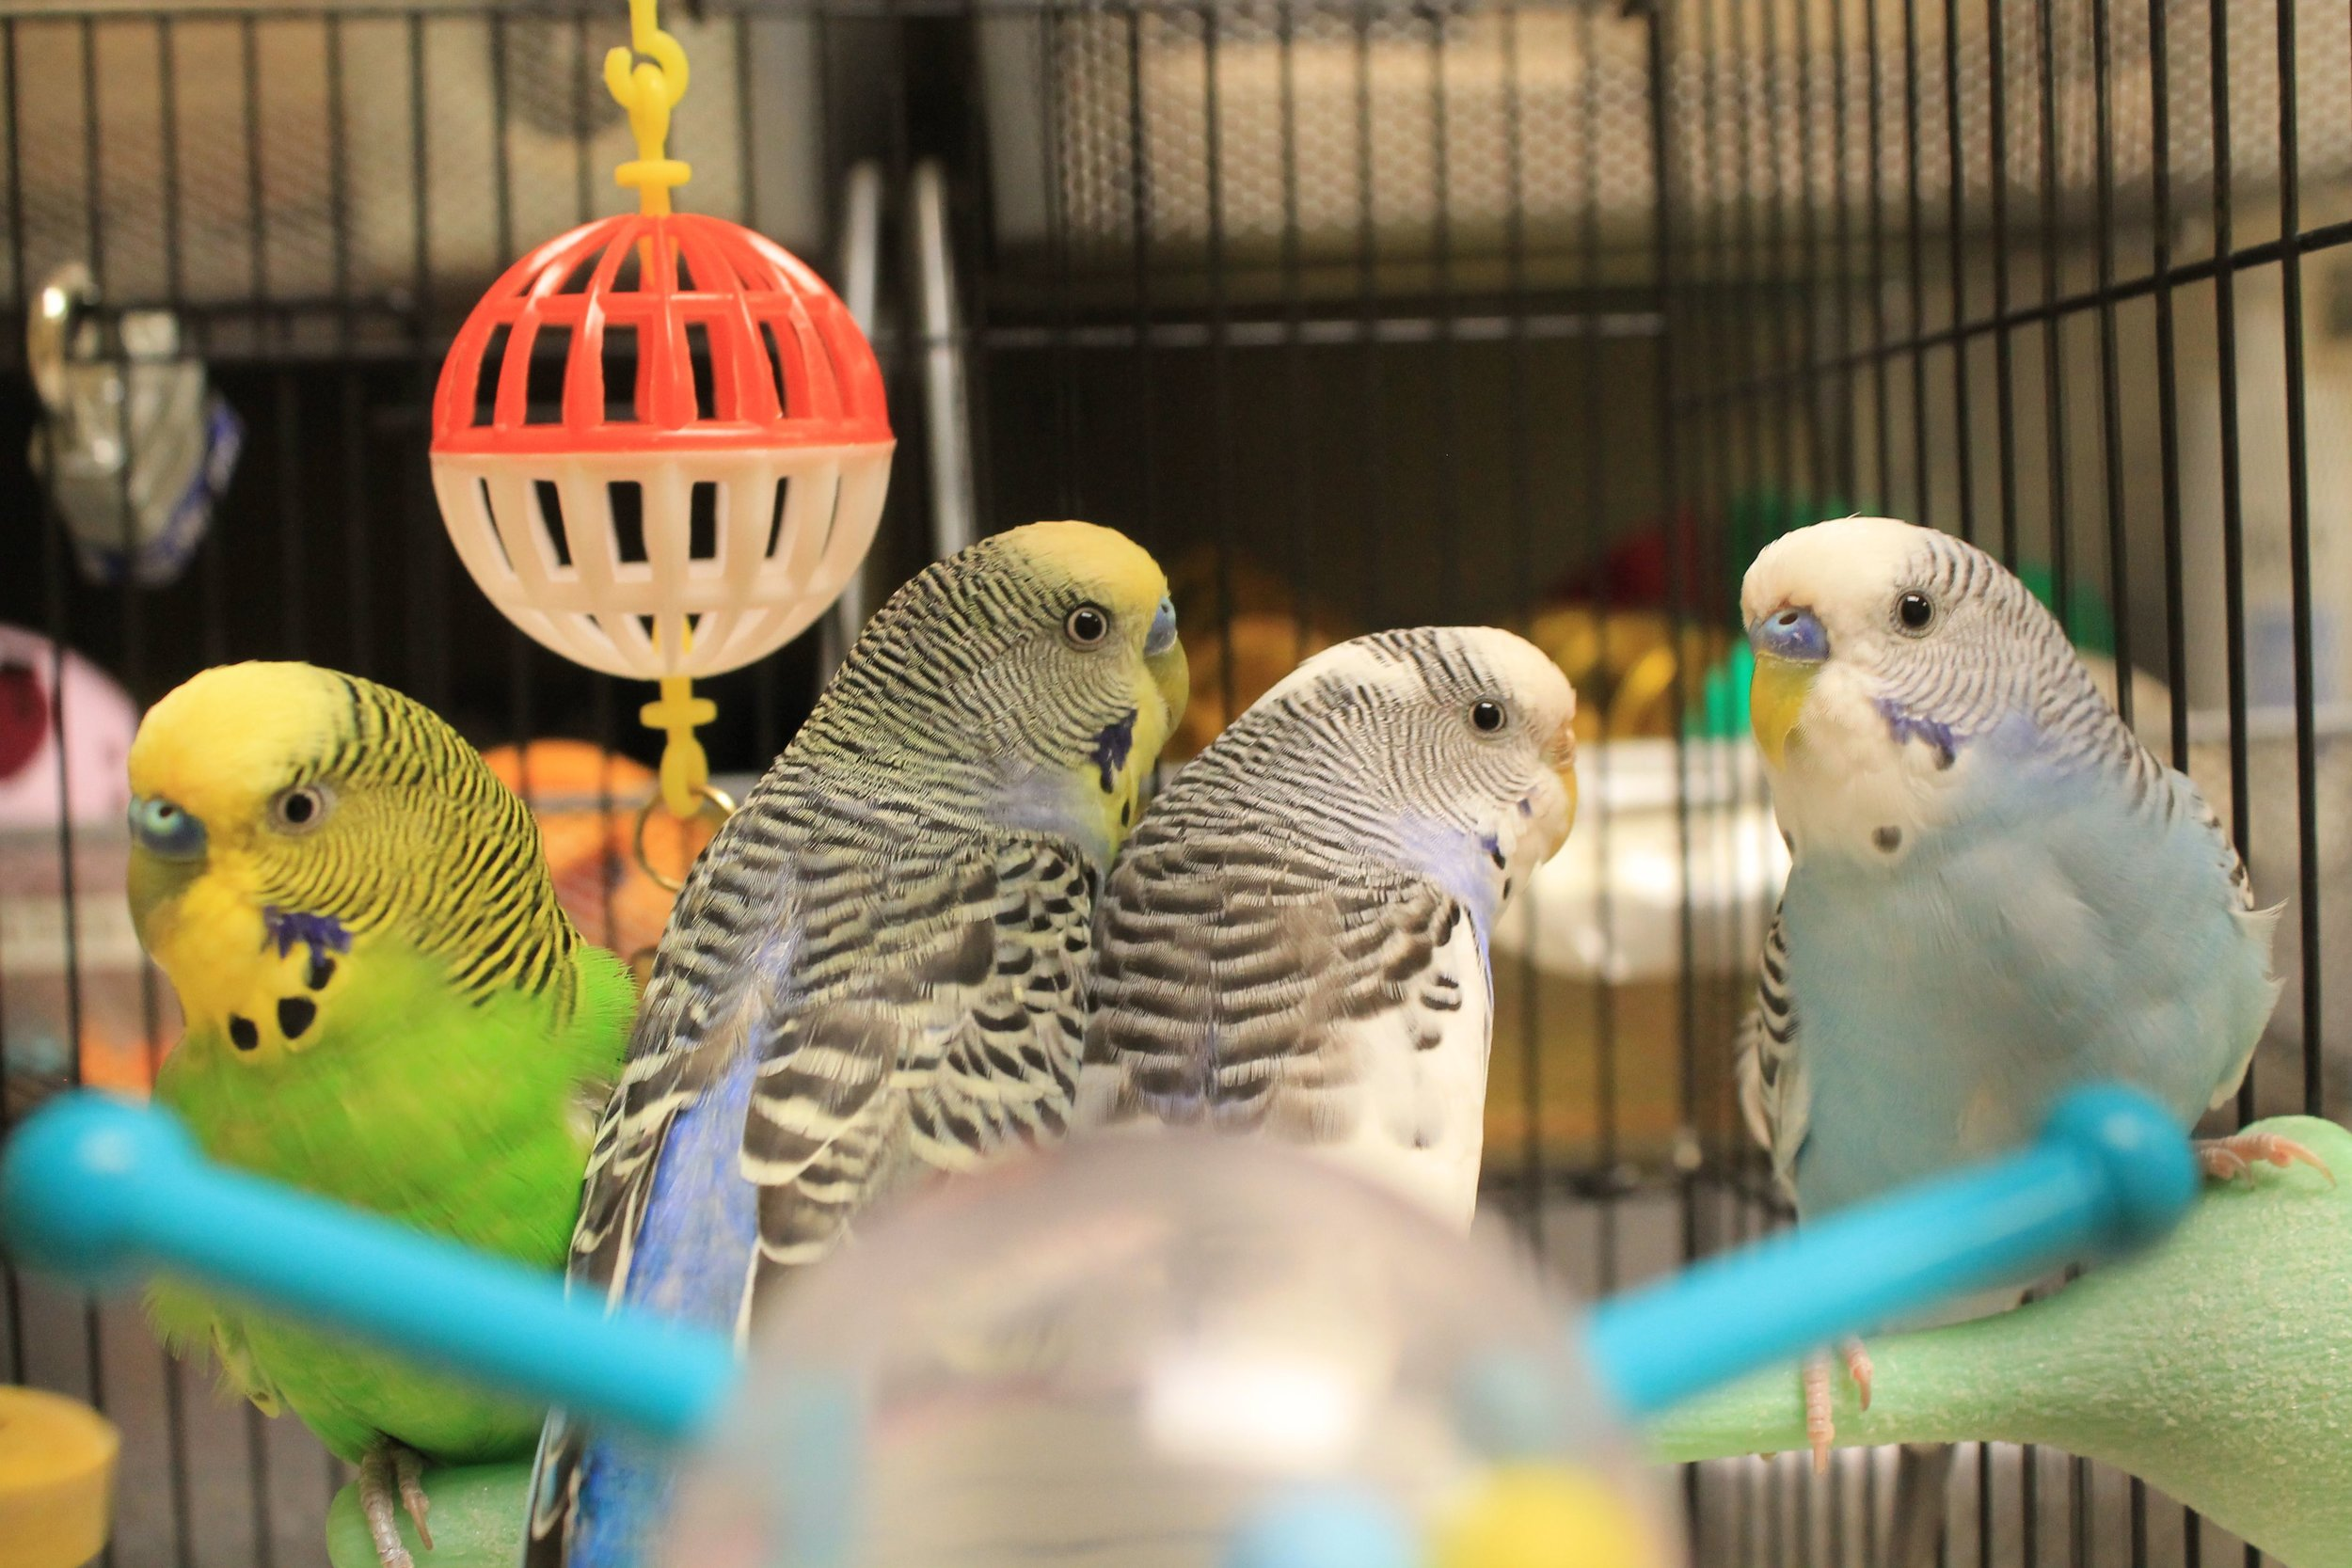 Timmy, Indy, Speckle and Sunny are a foursome of fun and happy parakeets! They love being together so they would love to be adopted as a group or in pairs--they would be very unhappy if they had to live as a single bird. You will be entertained with their funny cage antics!